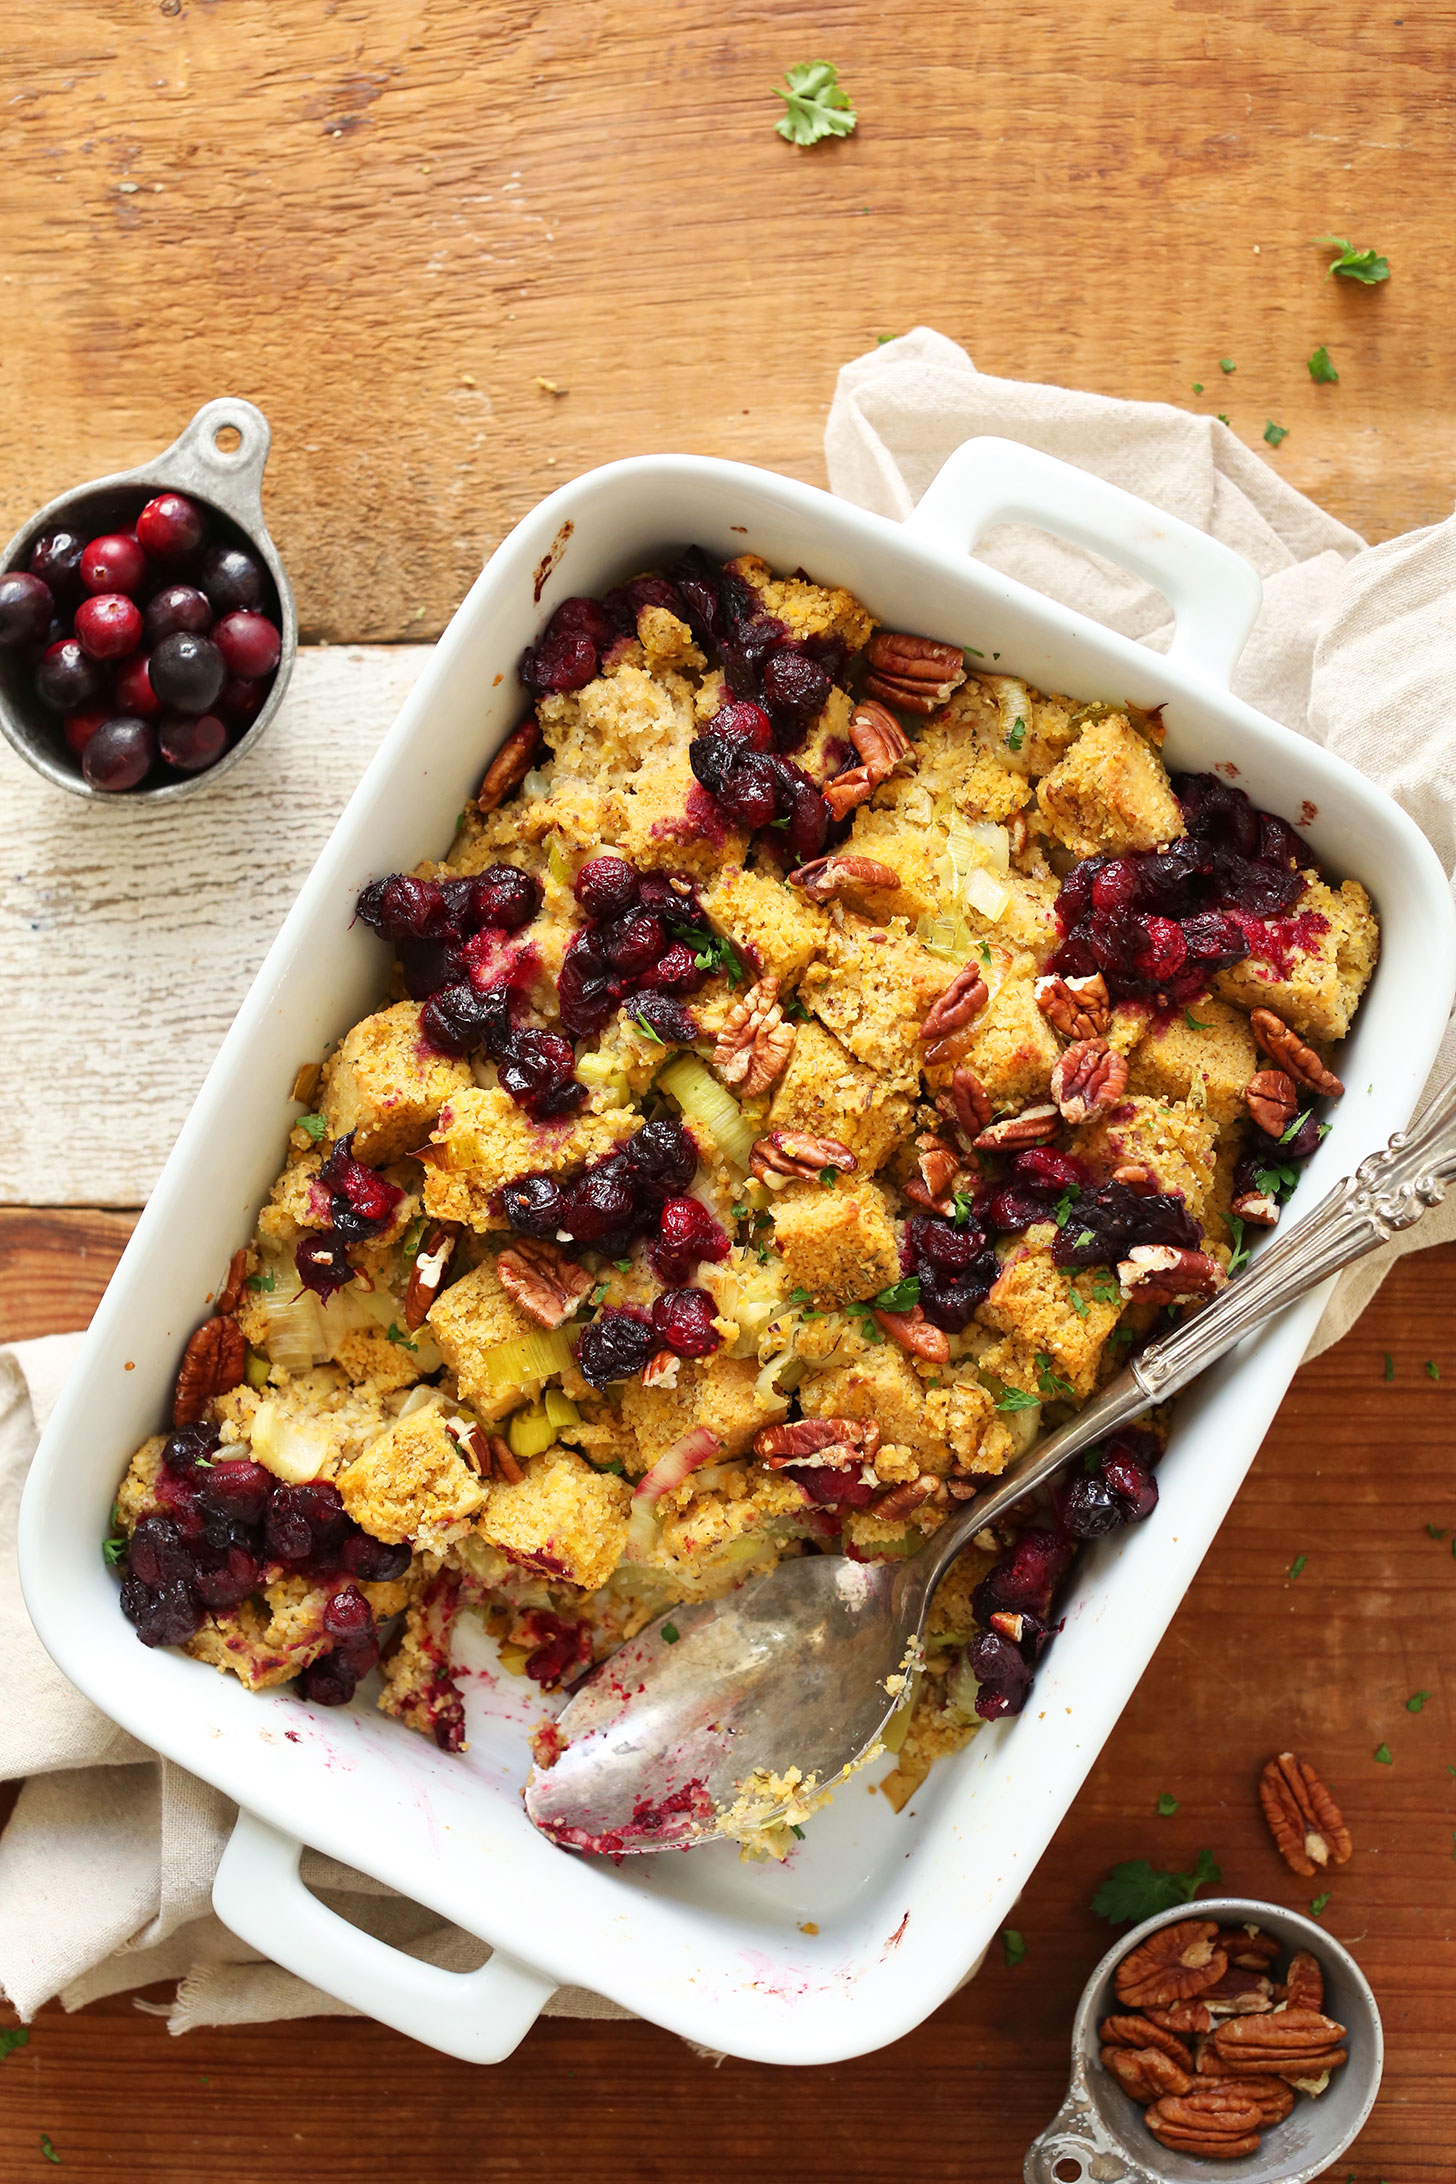 Ceramic baking dish filled with our Vegan Gluten-Free Cornbread Stuffing recipe